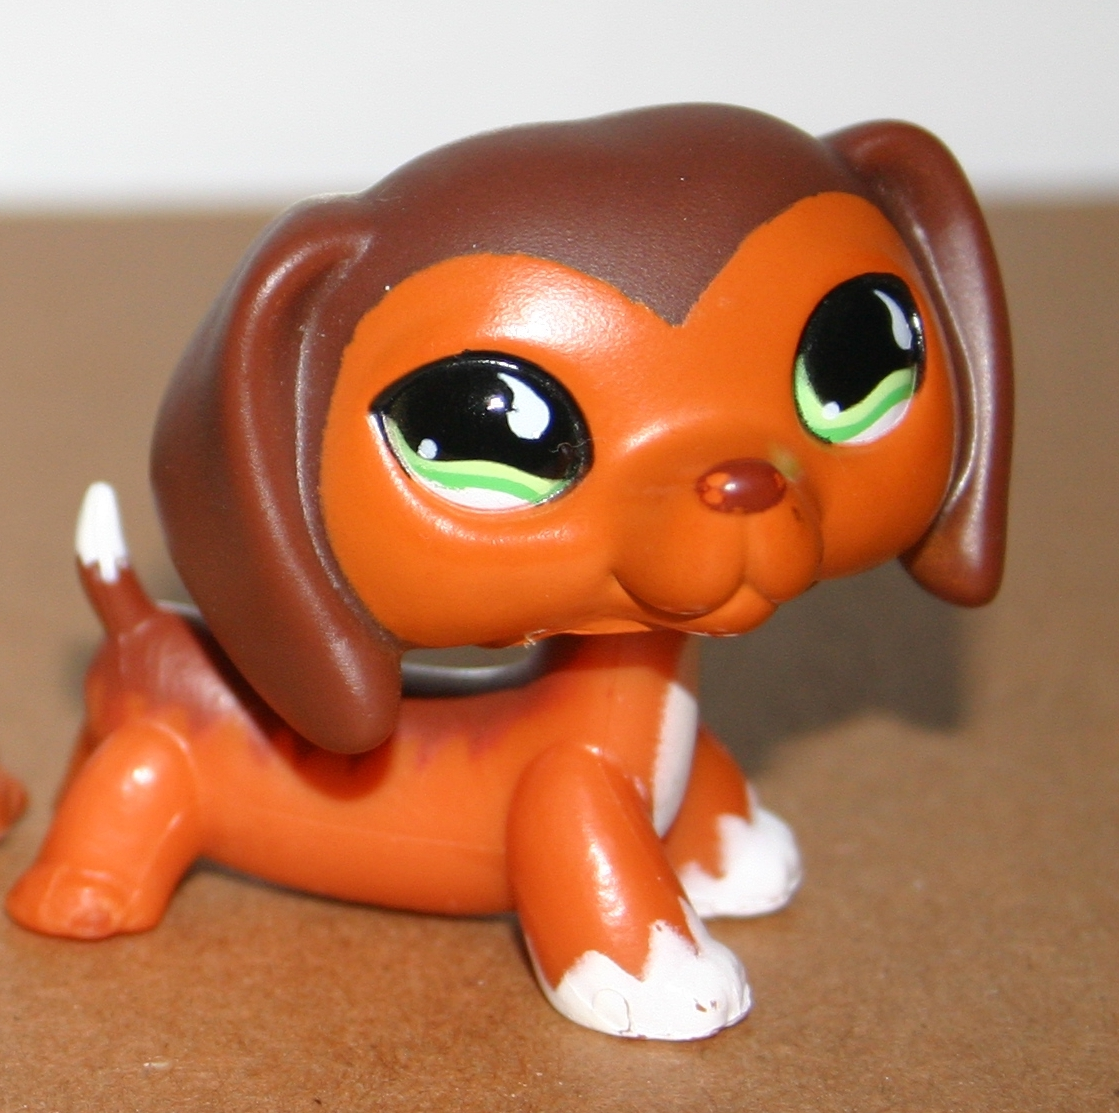 Littlest Pet Shop Wiener Dogs Littlest Pet Shop Which Pet do